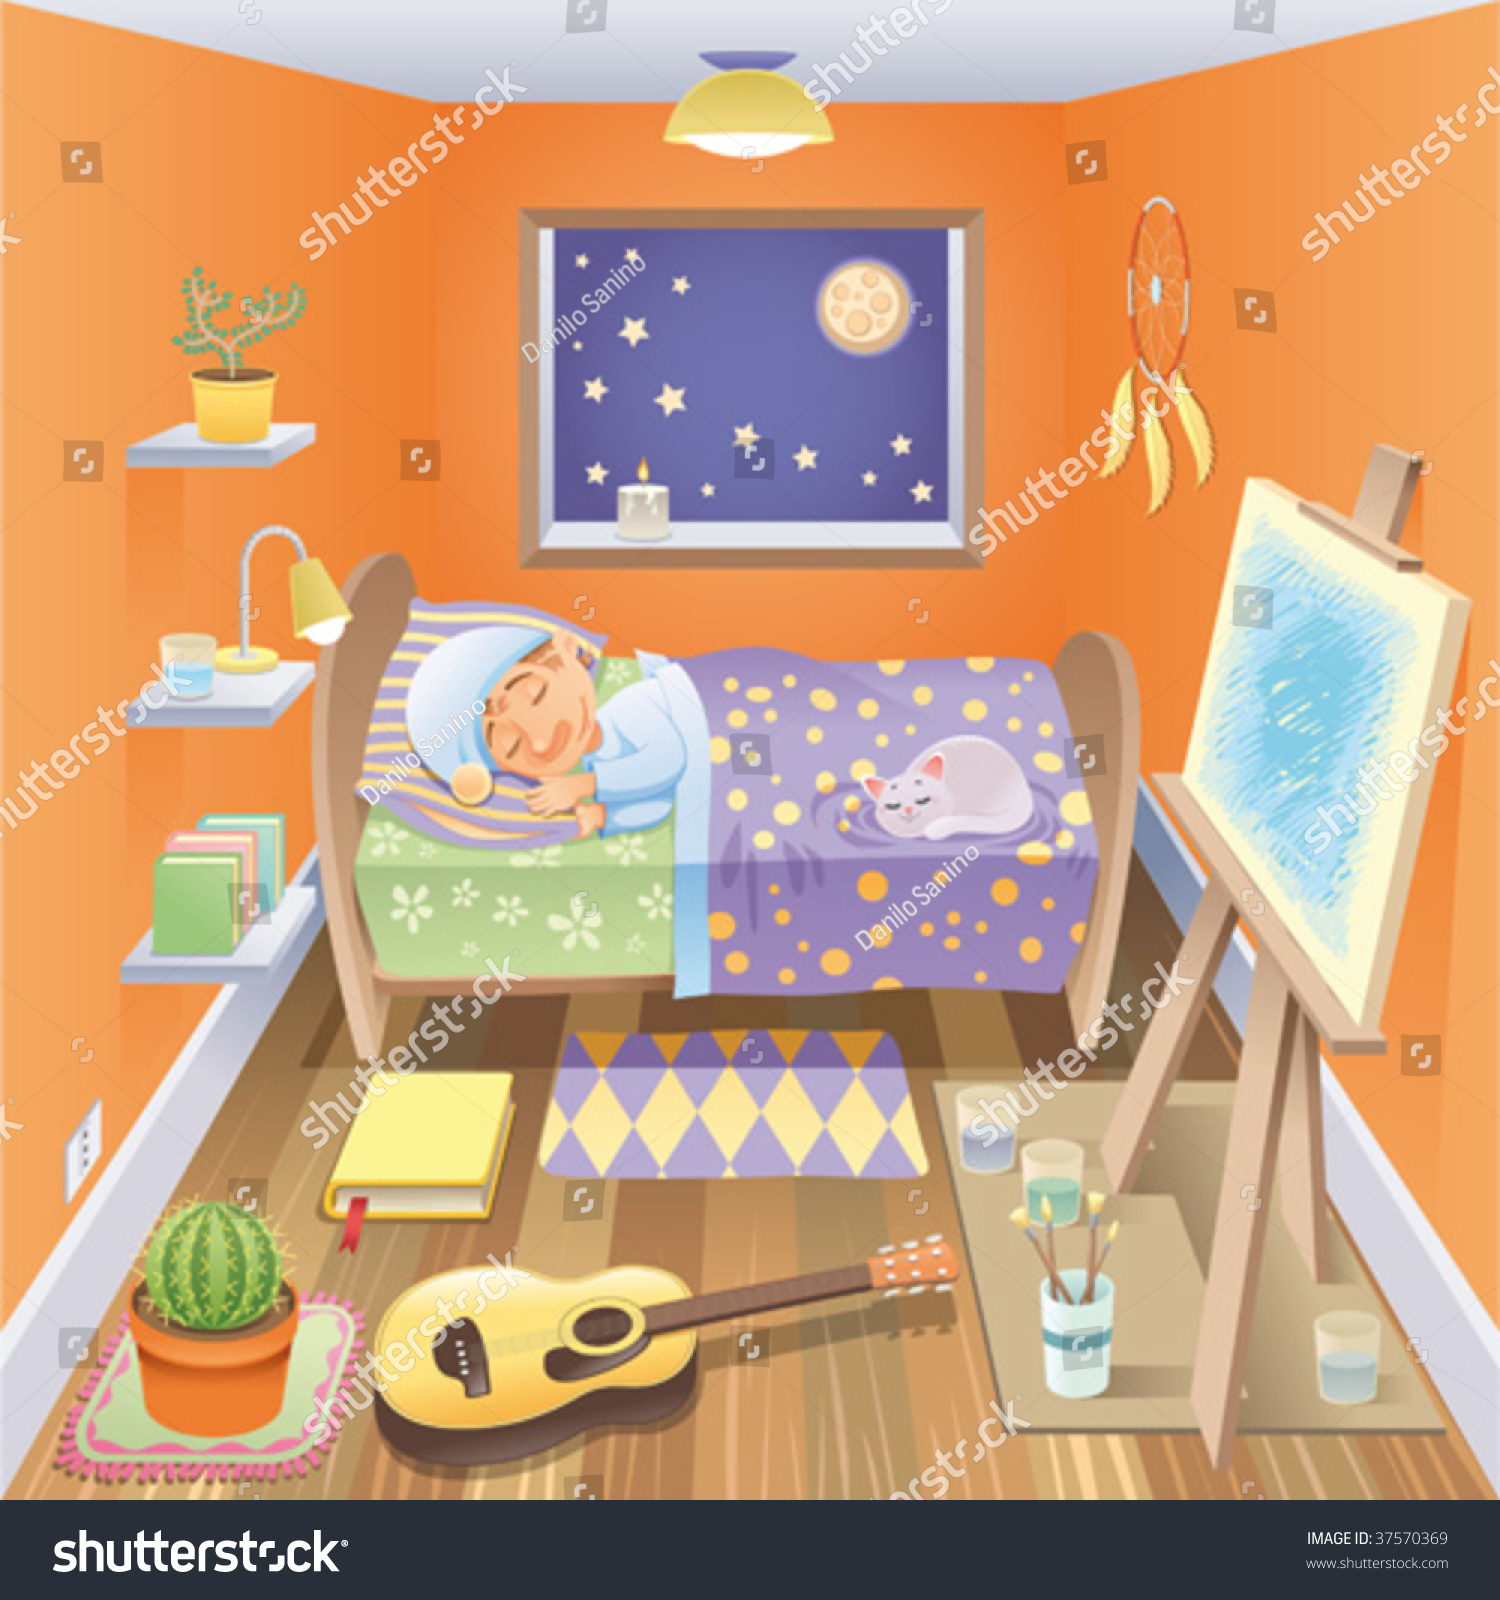 Boy sleeping his bedroom funny cartoon stock vector Funny bedroom